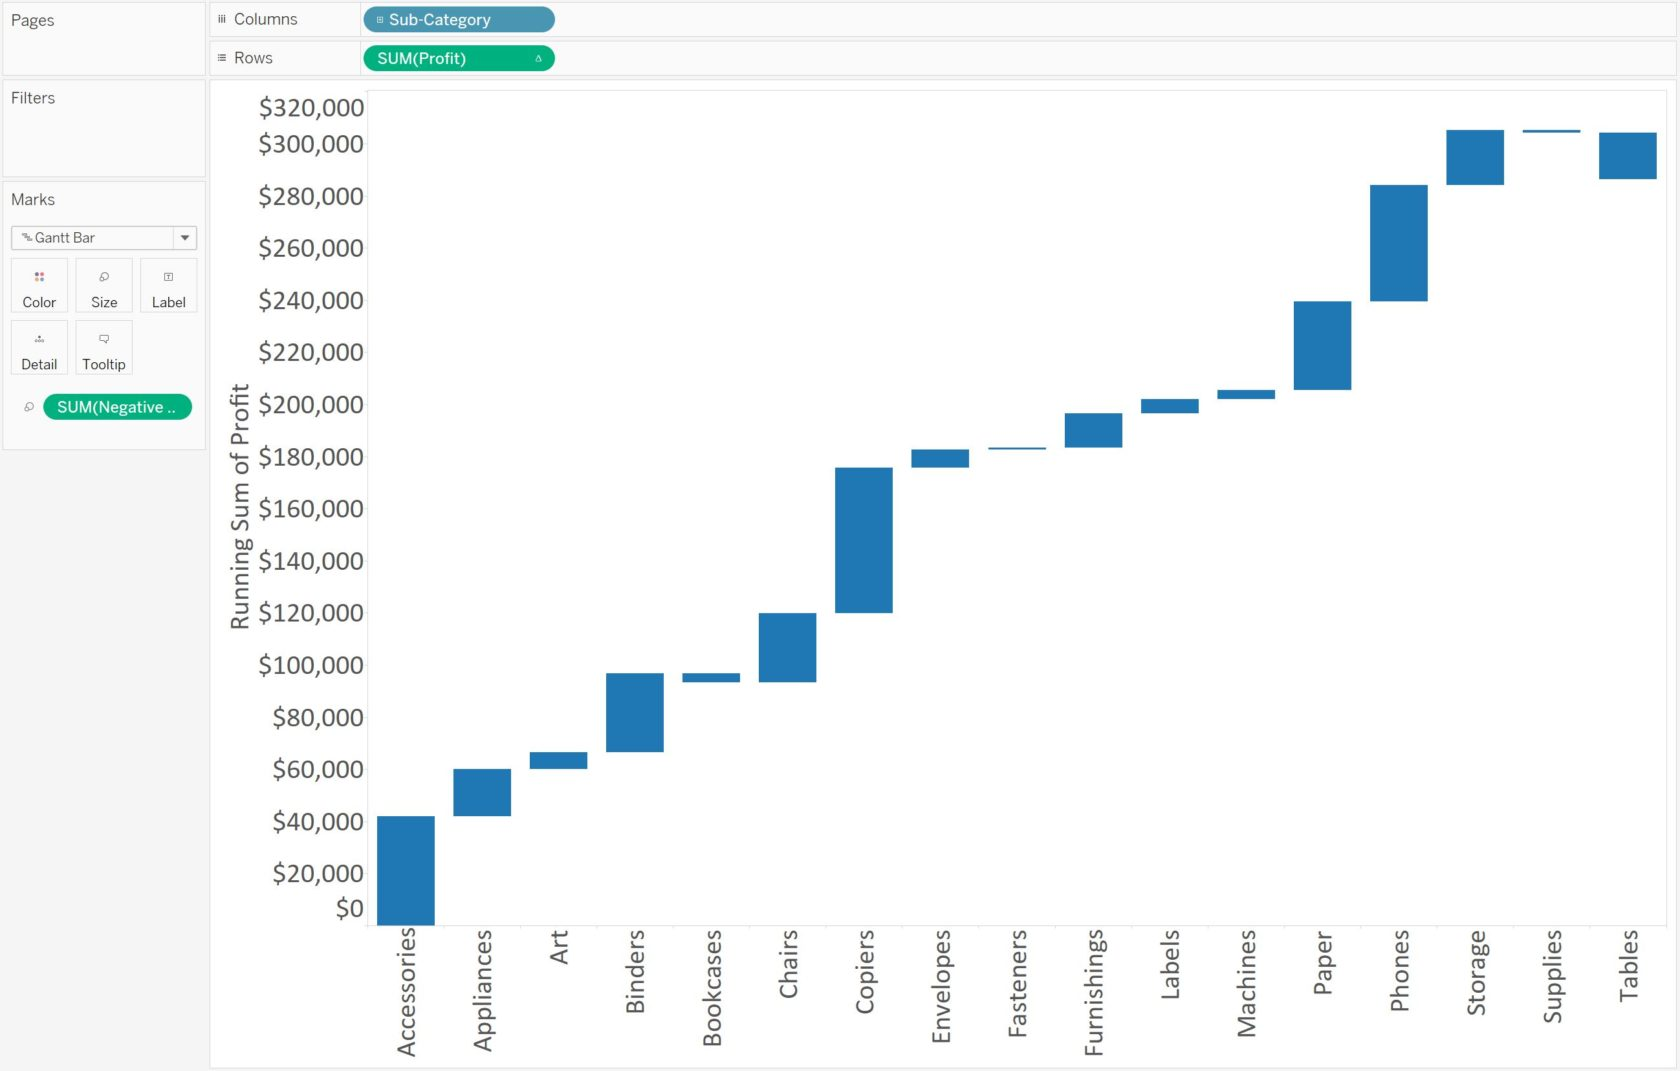 Tableau Waterfall Chart Profit by Sub-Category